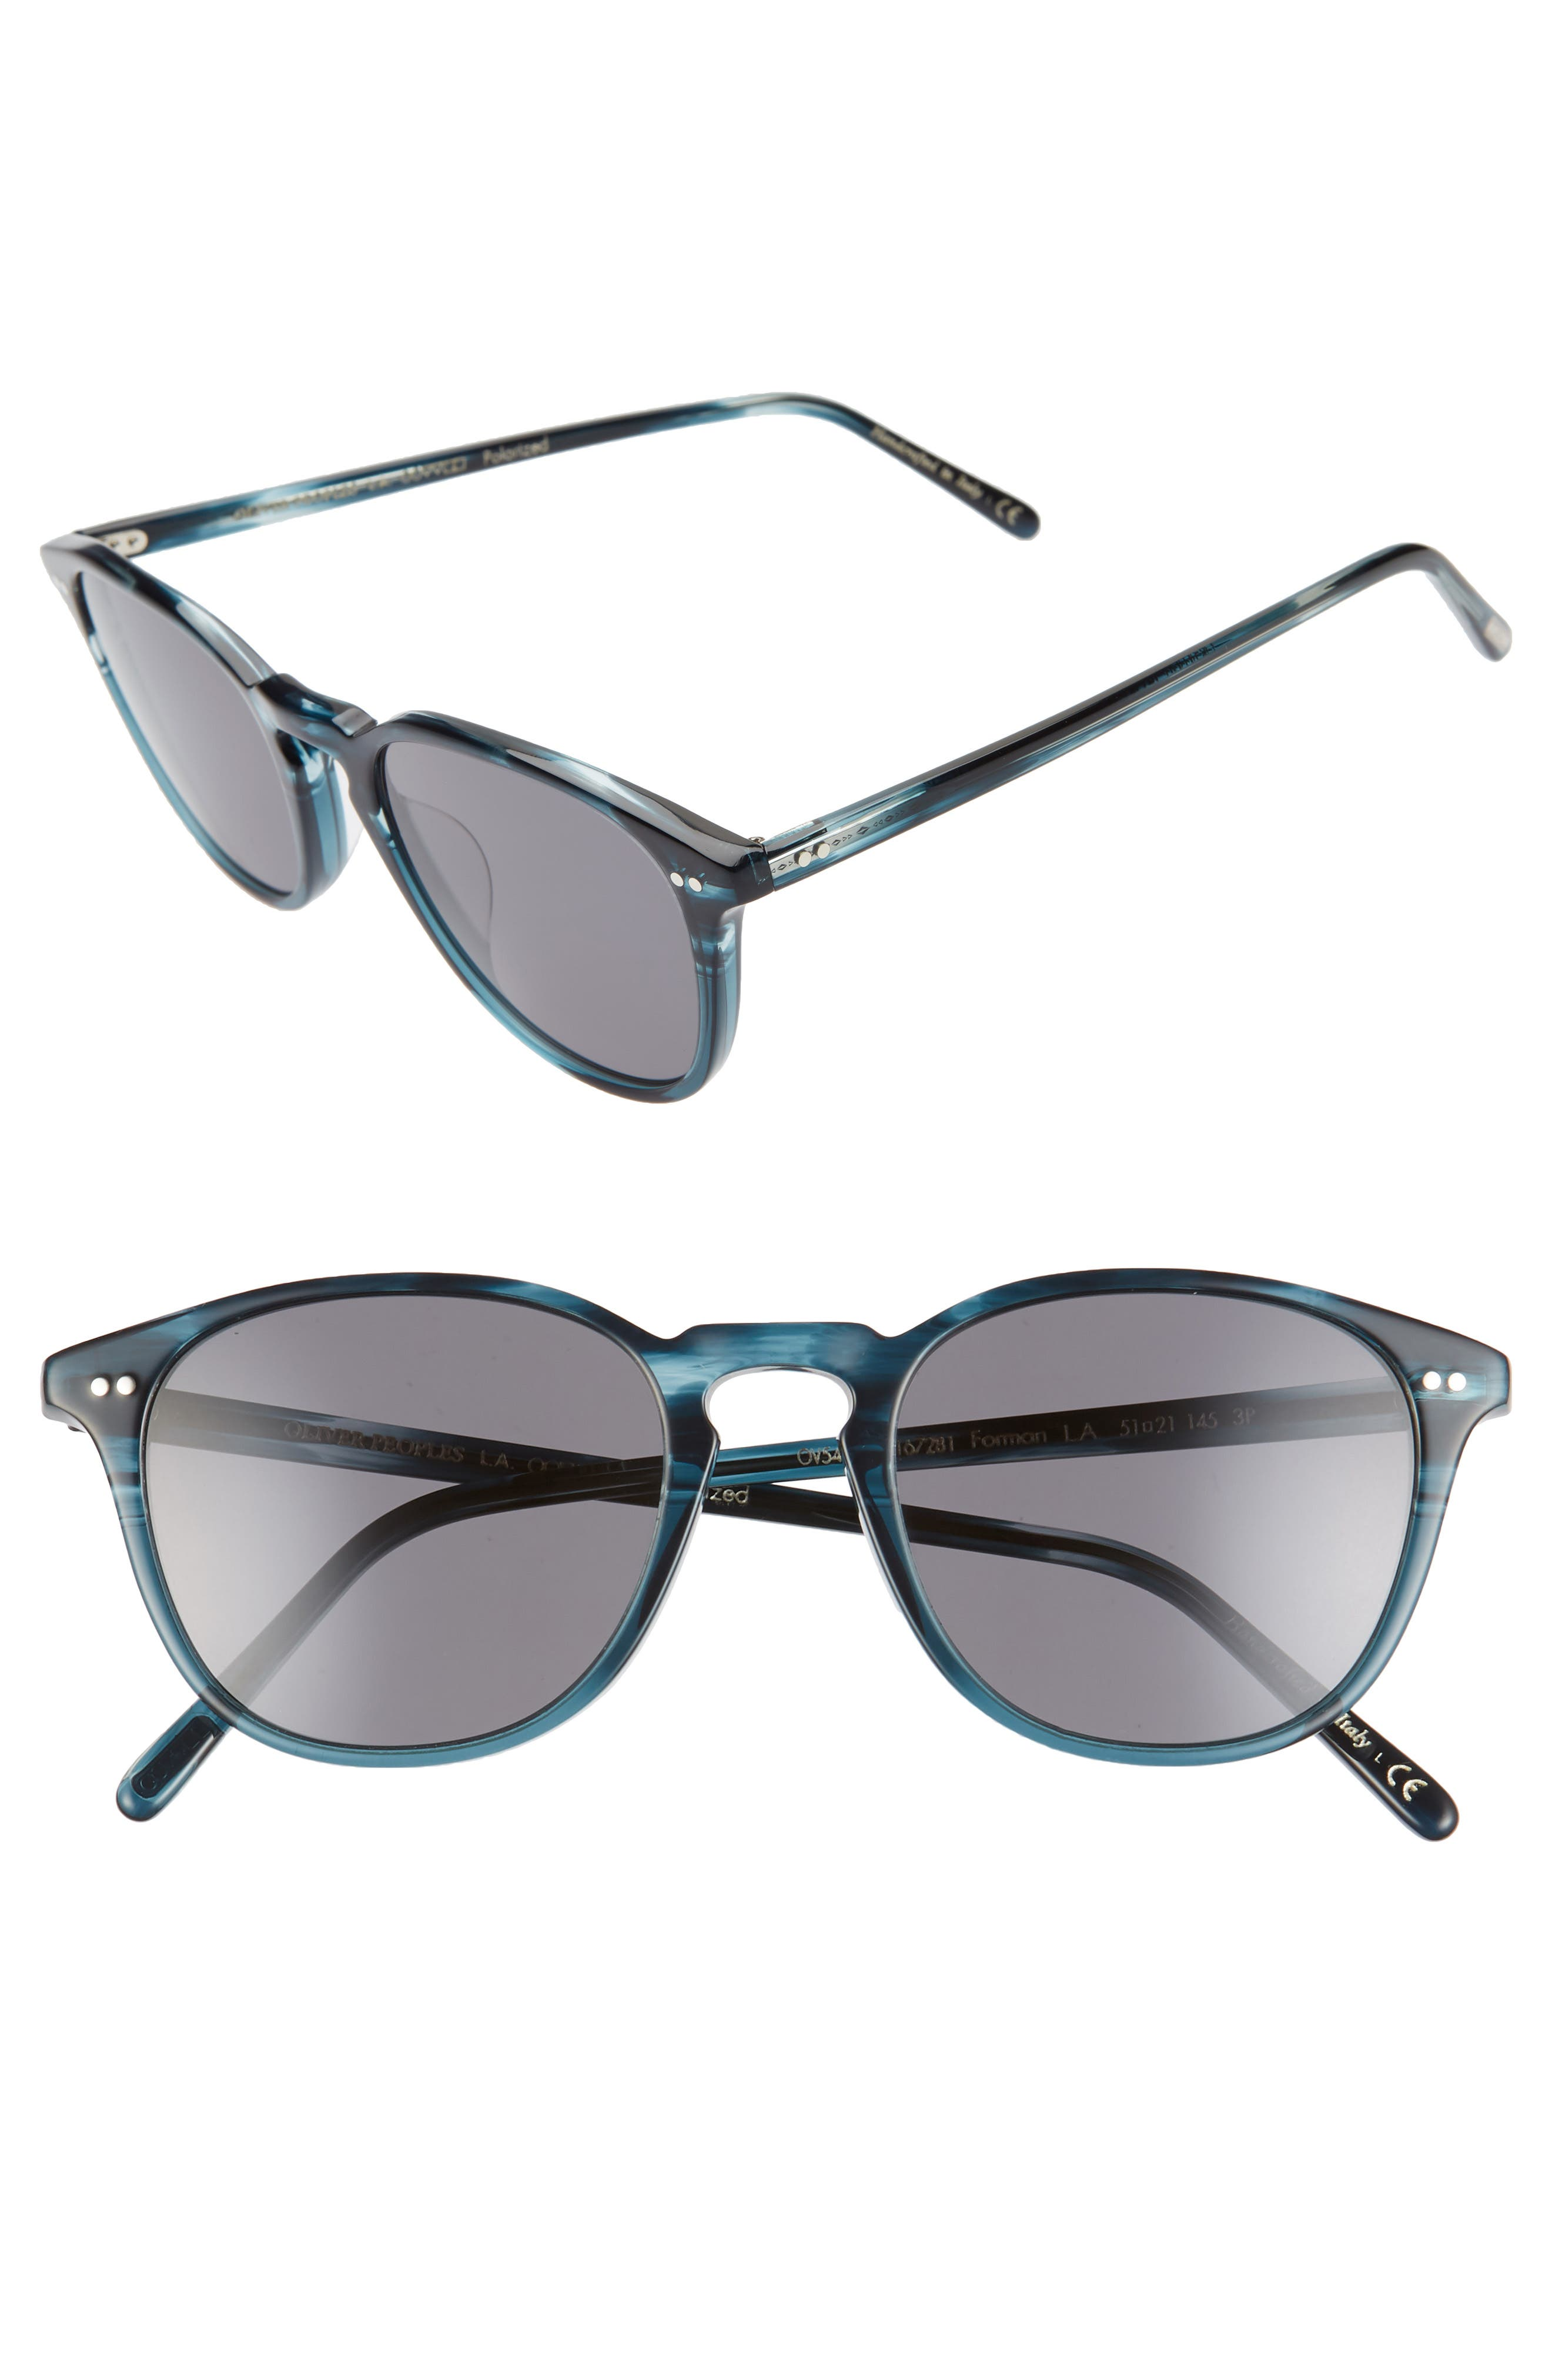 Oliver Peoples Forman L.a. 51Mm Polarized Round Sunglasses - Teal/ Grey